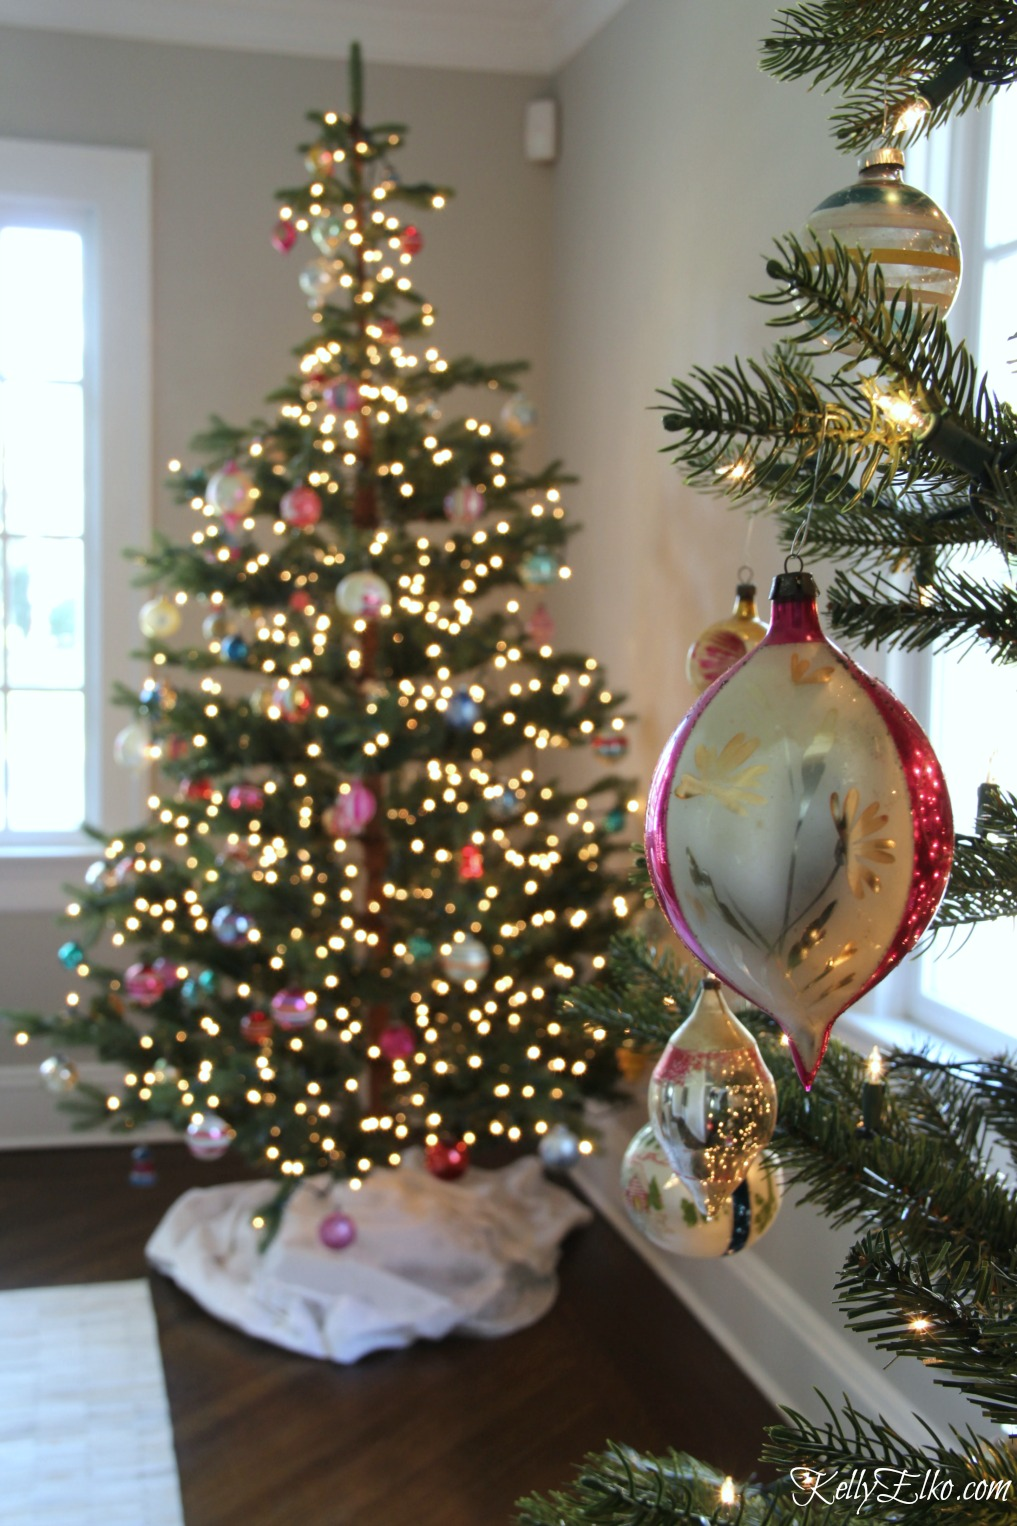 Christmas Home Tour - love these trees with vintage Shiny Brite ornaments kellyelko.com